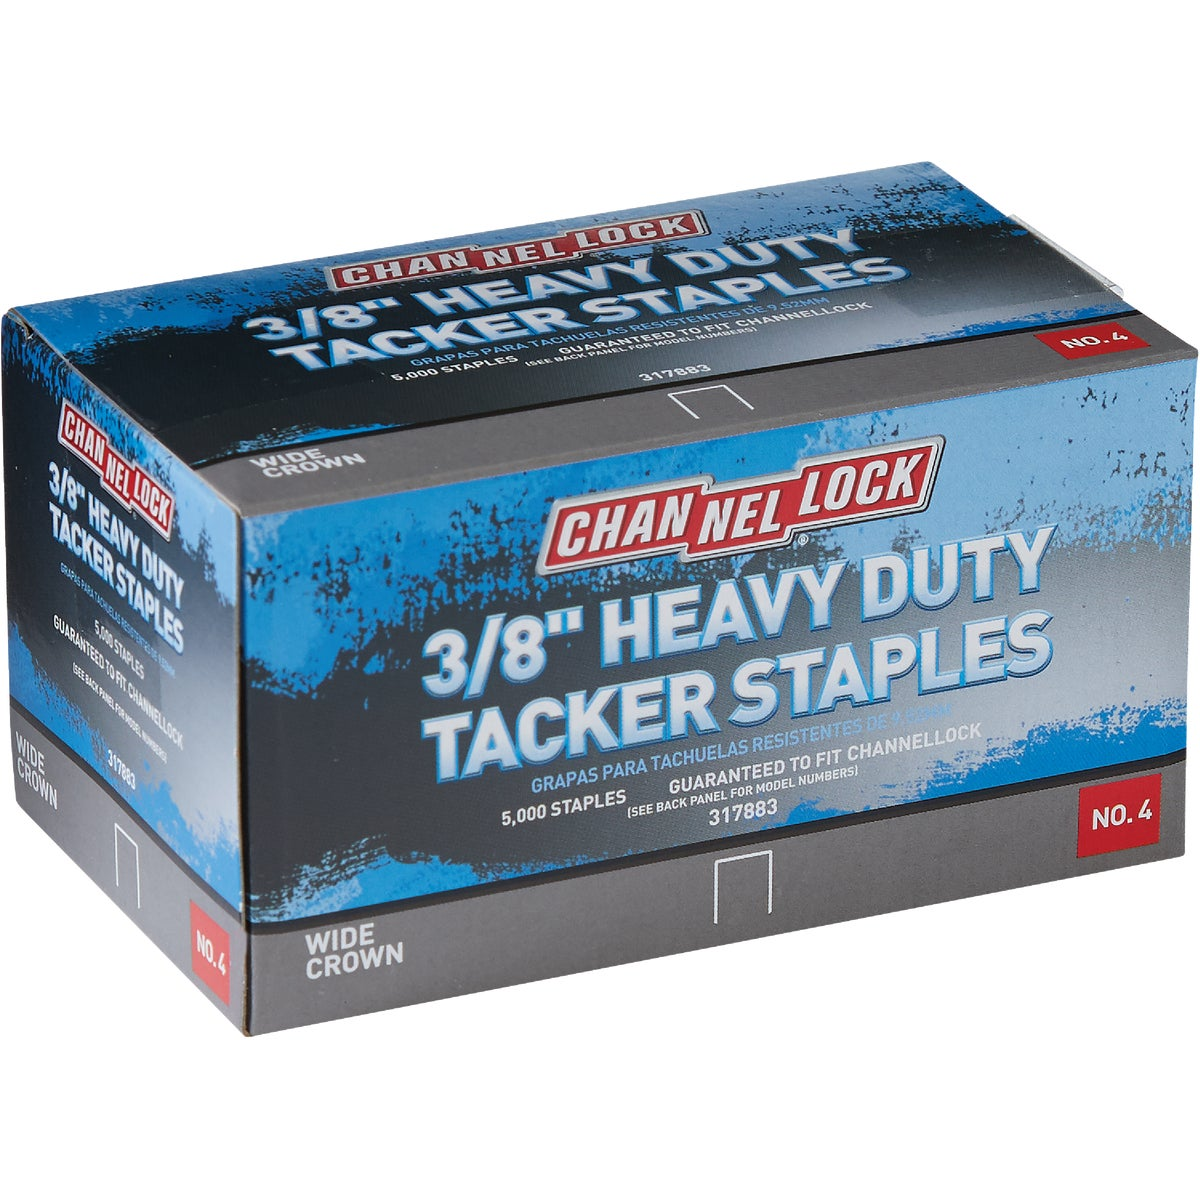 "3/8"" TACKER STAPLES - A11382 by Channellock®"